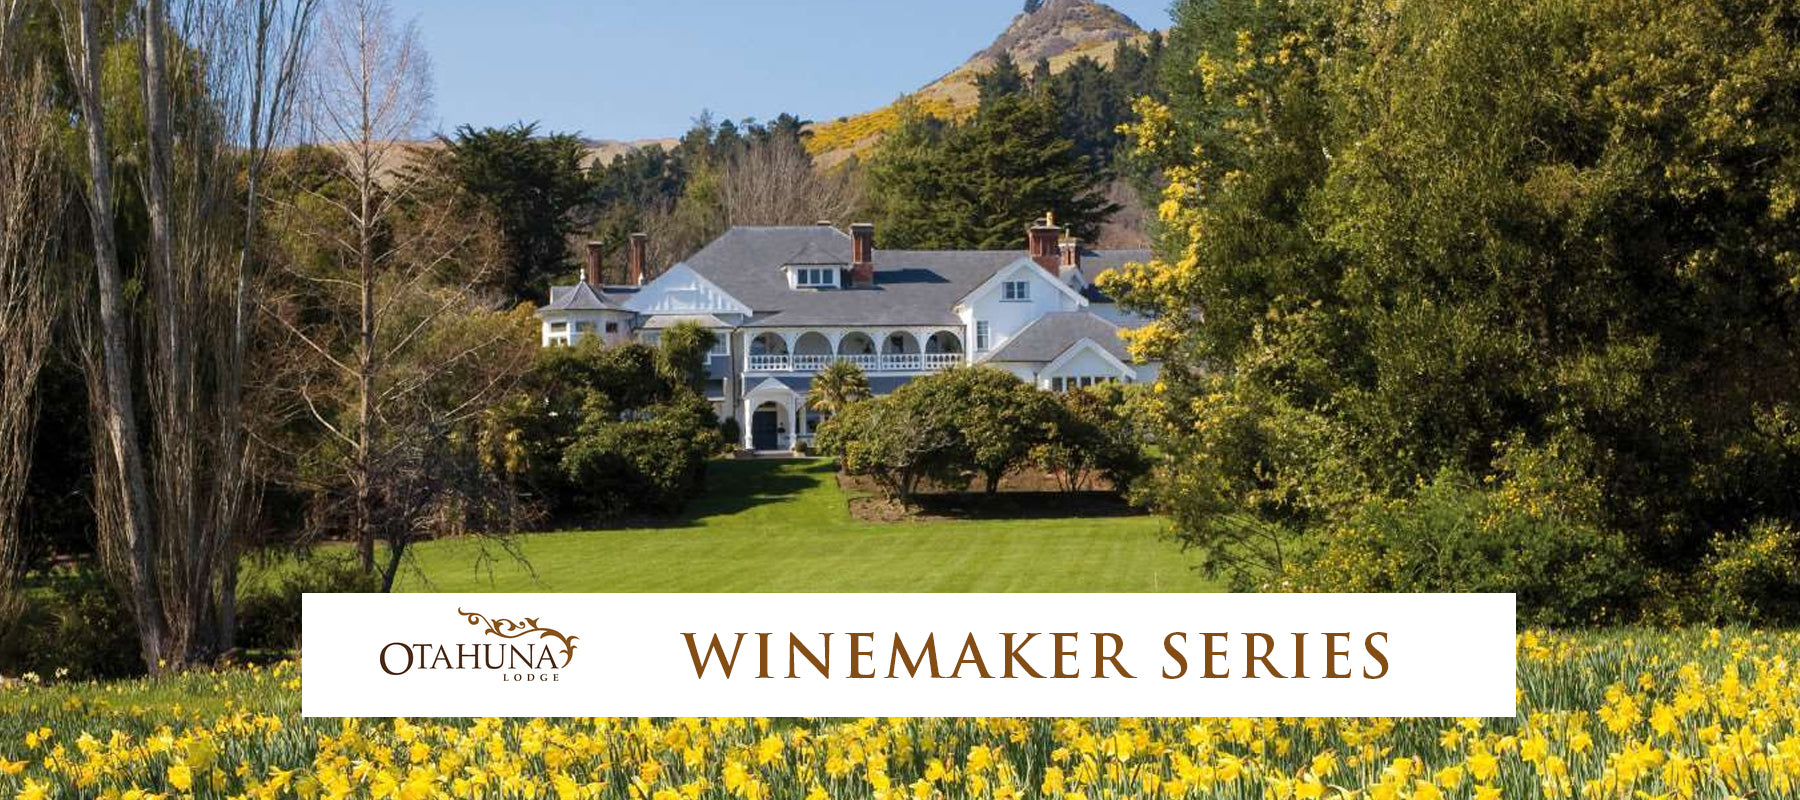 Otahuna Lodge Winemaker's Dinner - Saturday 30th January